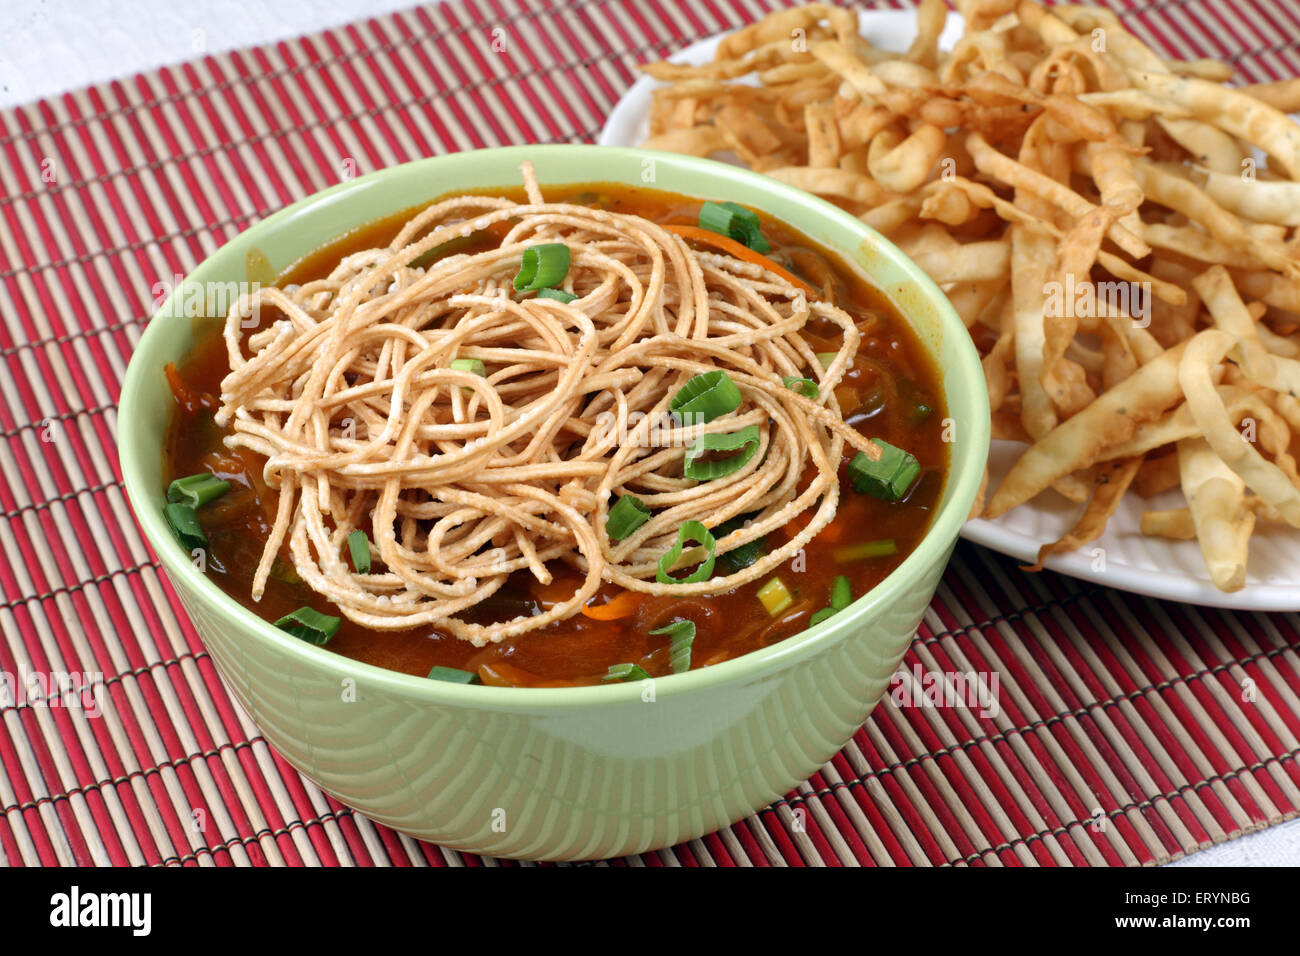 Chinese Food american chop suey noodles in bowl India PR#743AH - Stock Image